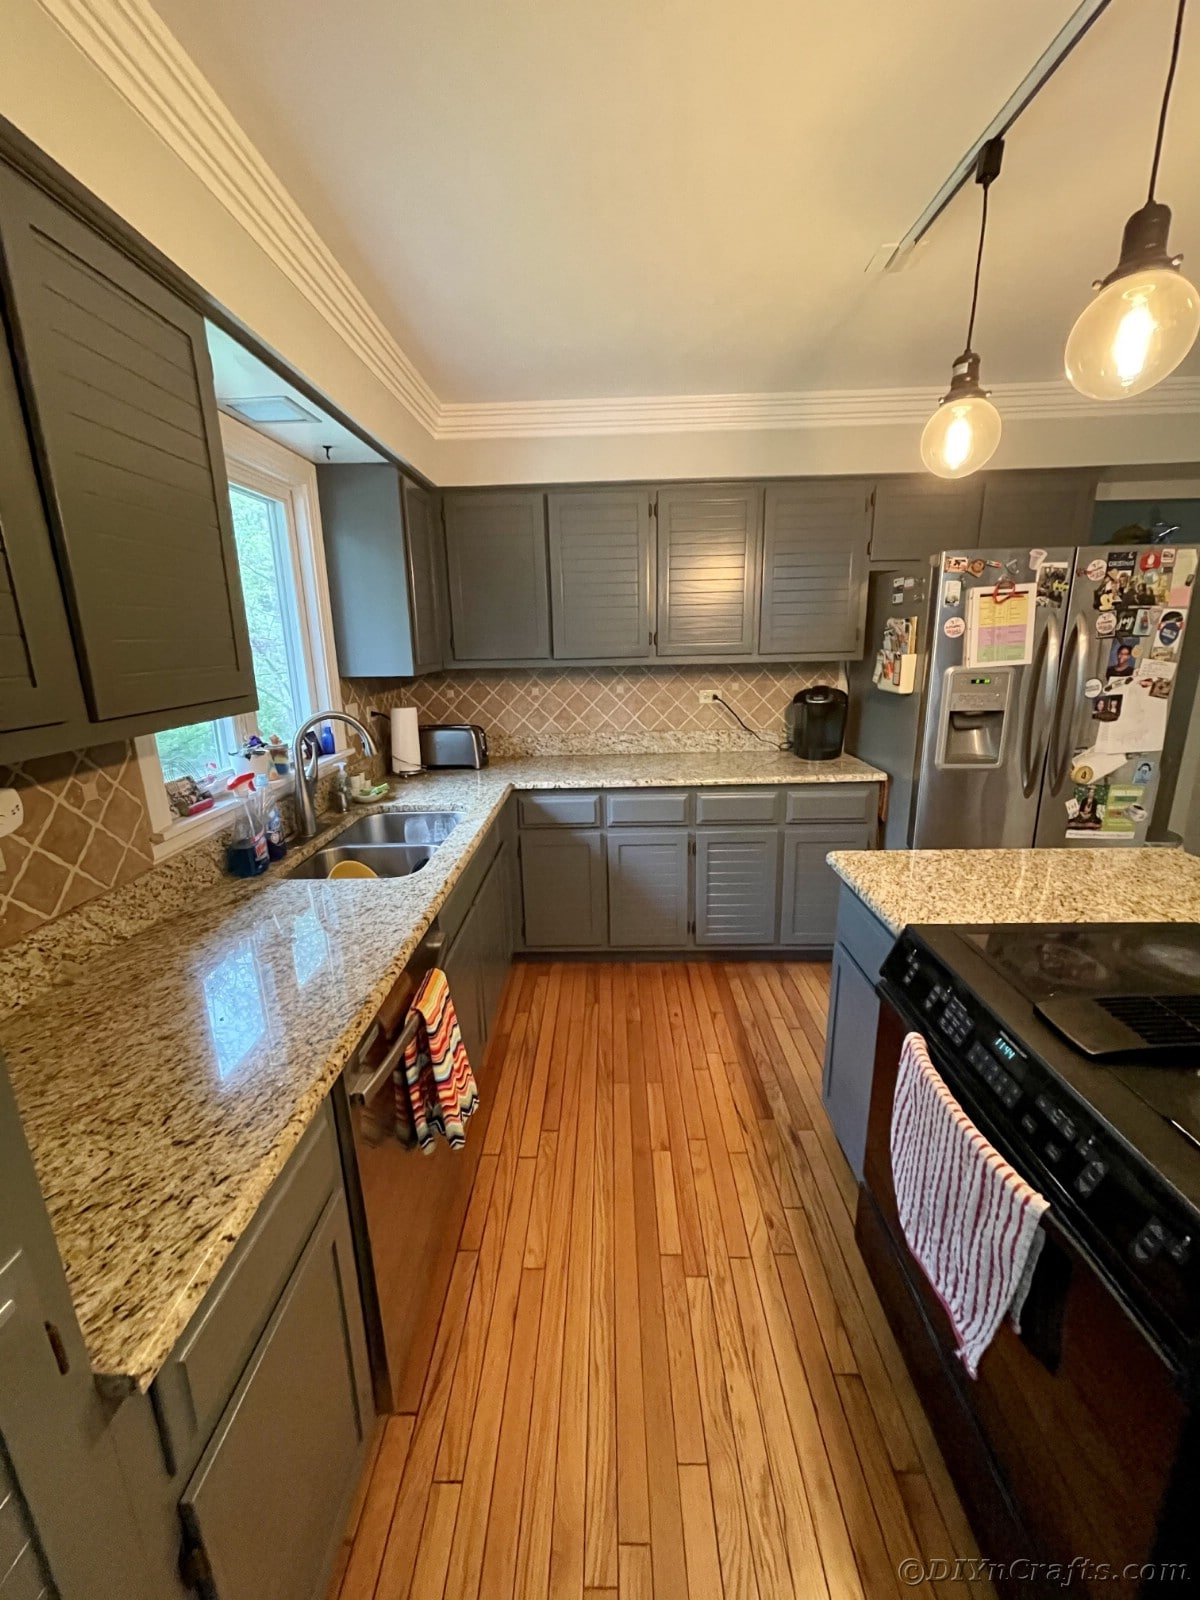 Kitchen with black stove and gray cabinets